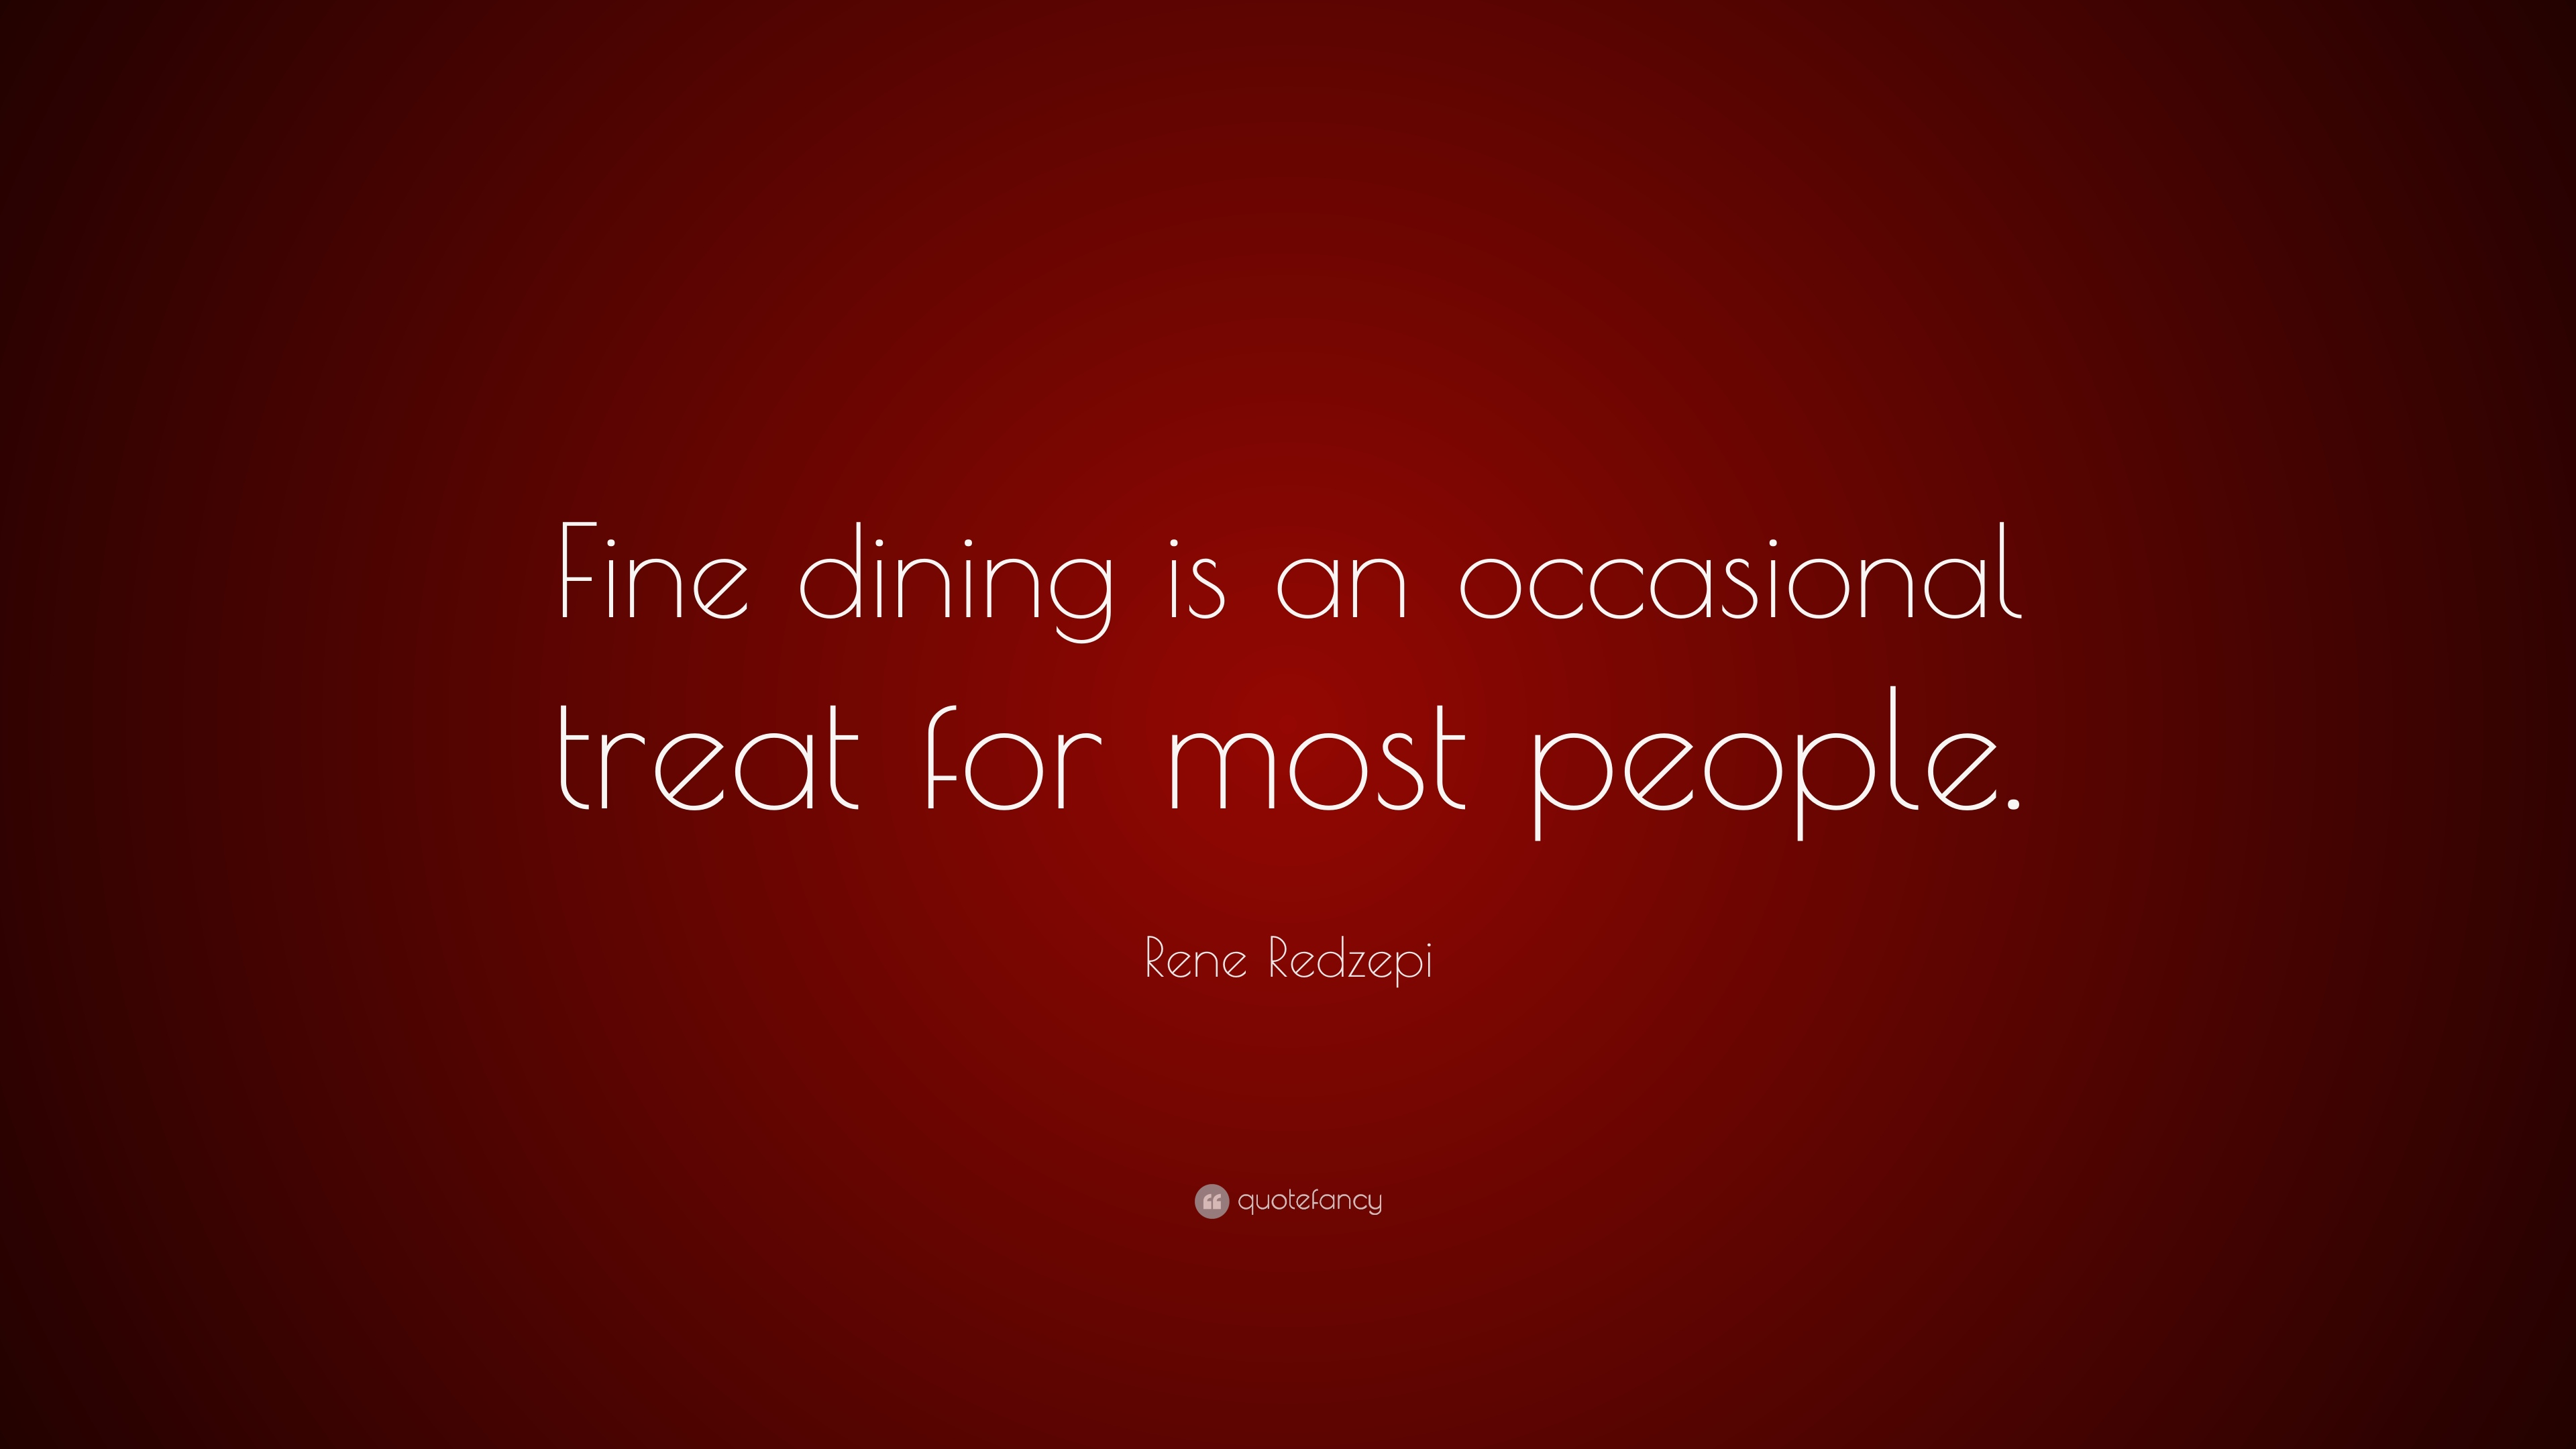 Dining Quotes And Sayings Twitter thumbnail